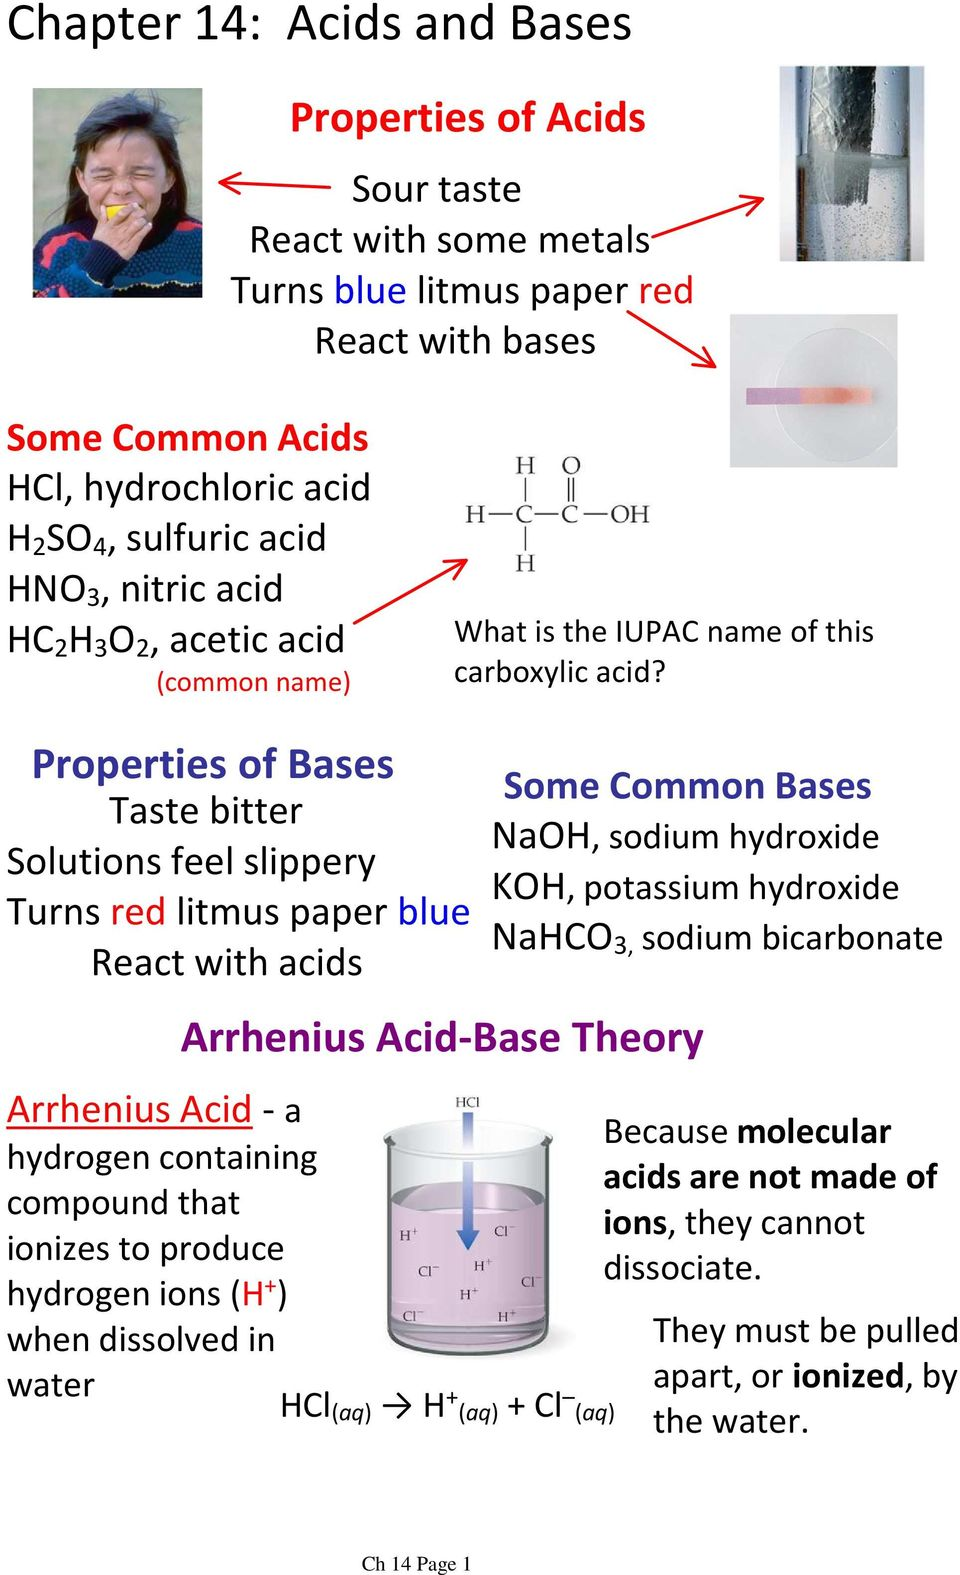 Properties of Bases Taste bitter Solutions feel slippery Turns red litmus paper blue React with acids Arrhenius Acid-a hydrogen containing compound that ionizes to produce hydrogen ions (H + ) when